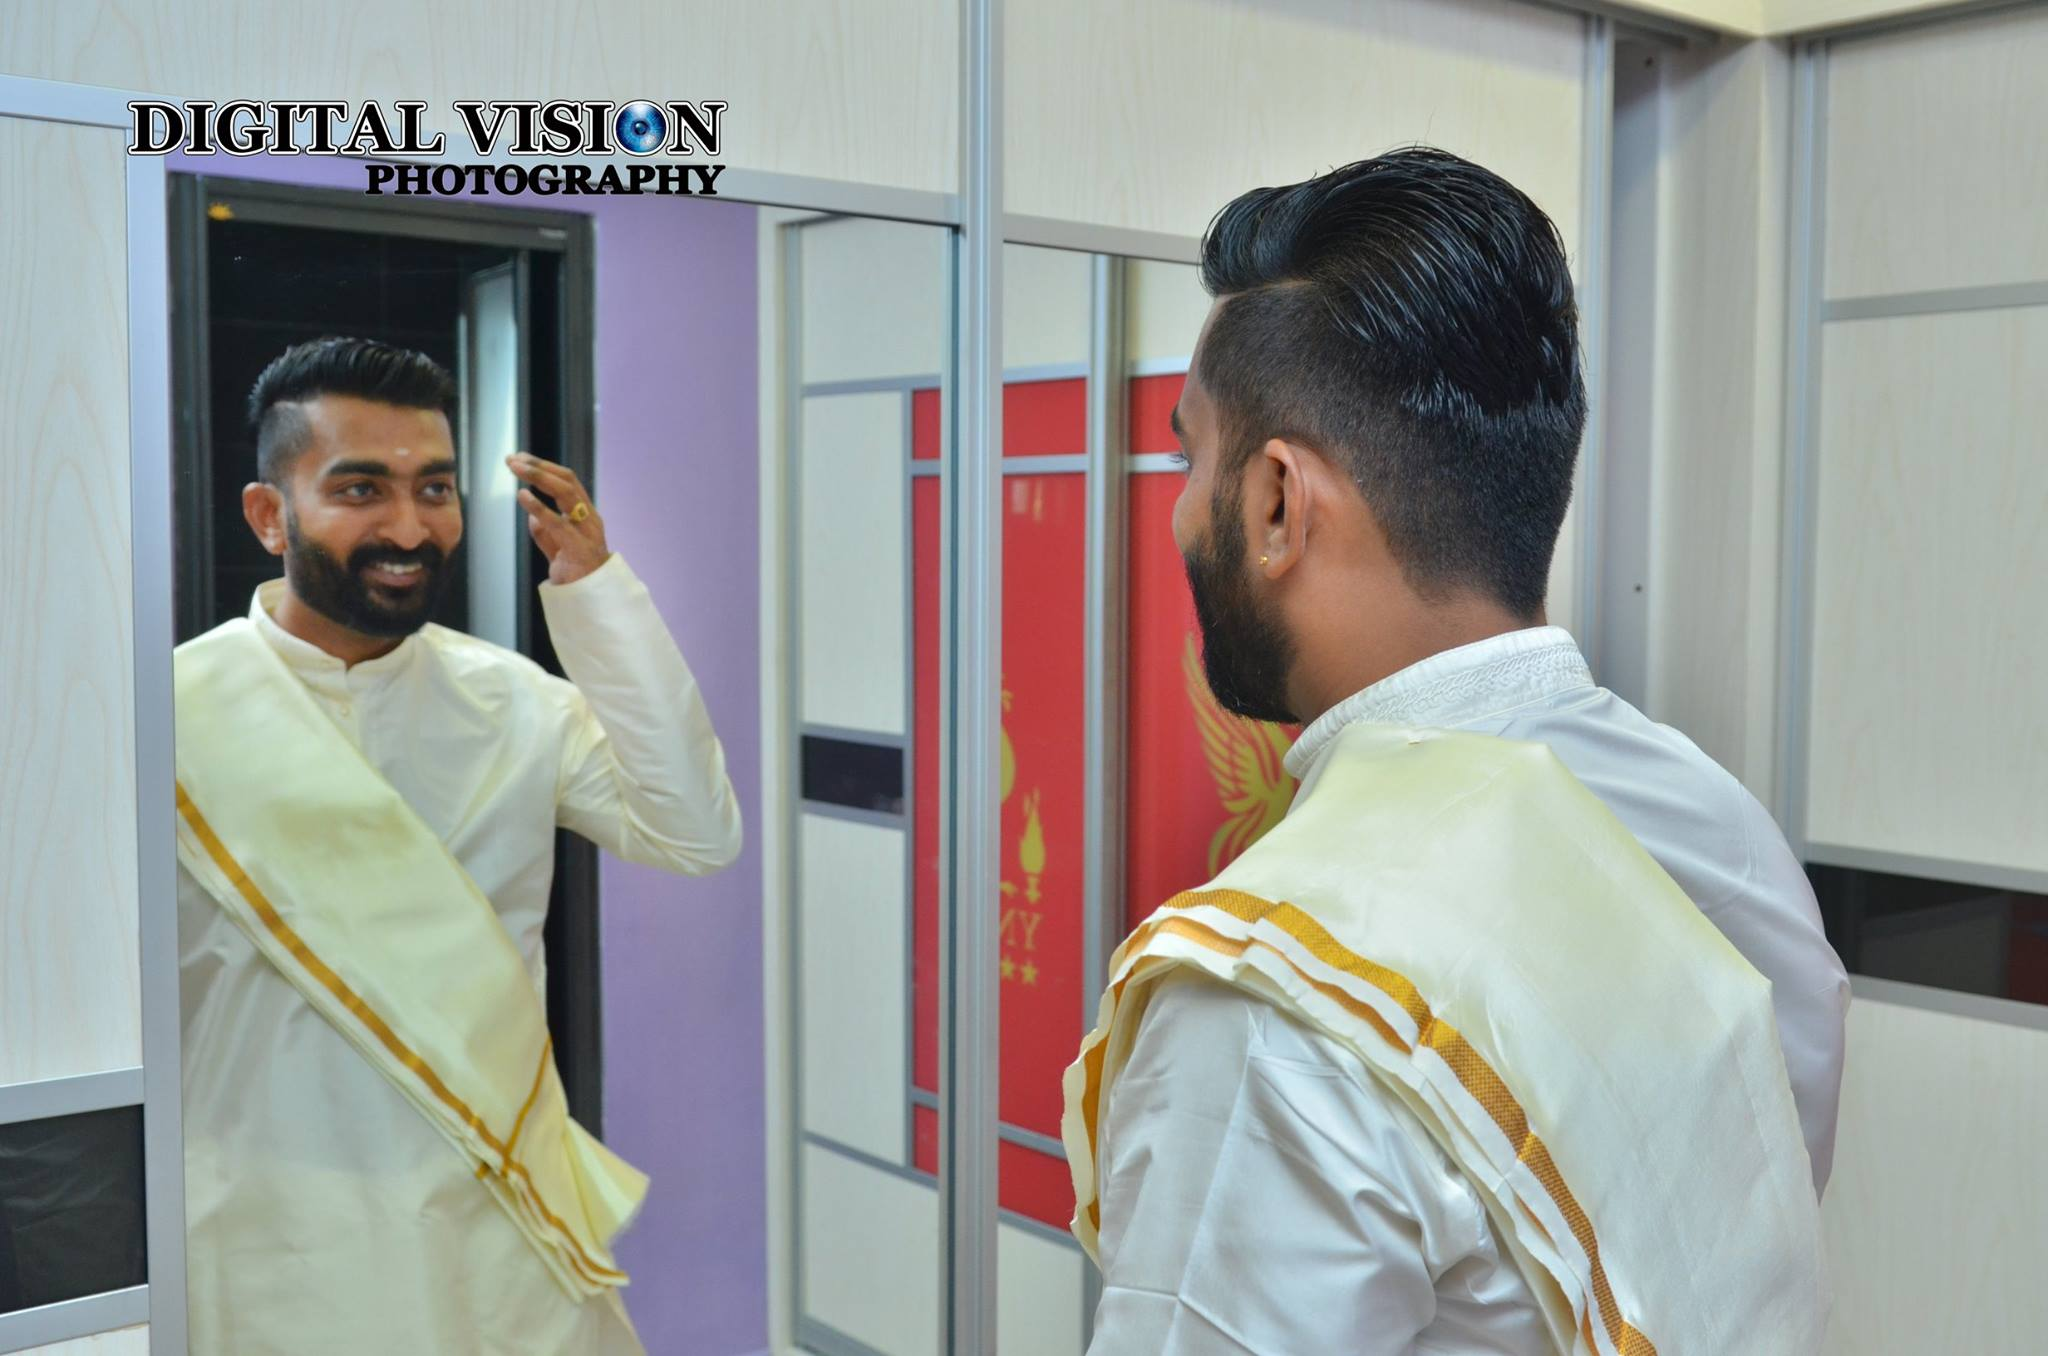 White traditional Groom outfit